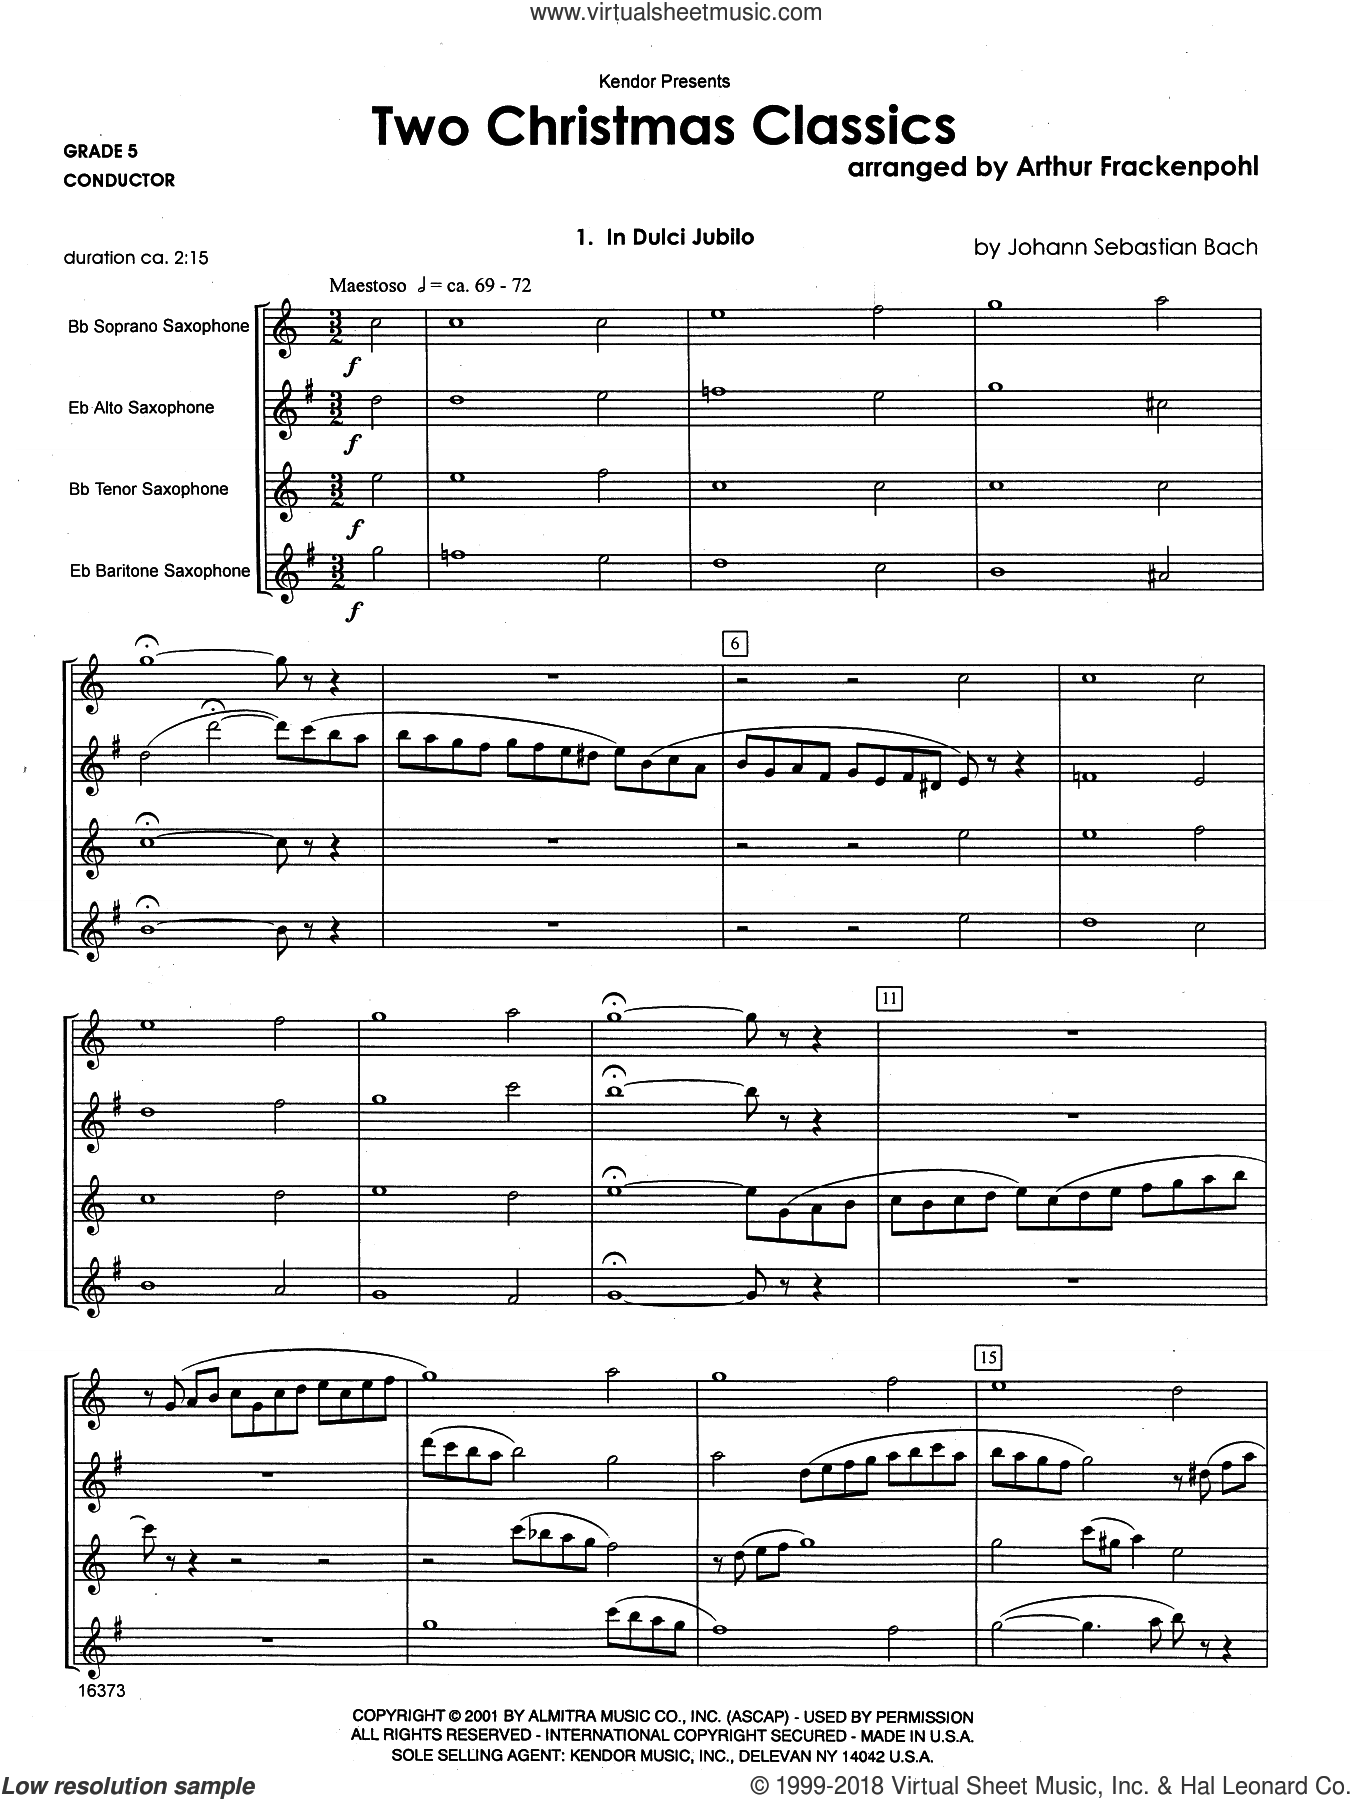 Two Christmas Classics (COMPLETE) sheet music for saxophone quartet by Arthur Frackenpohl, intermediate skill level